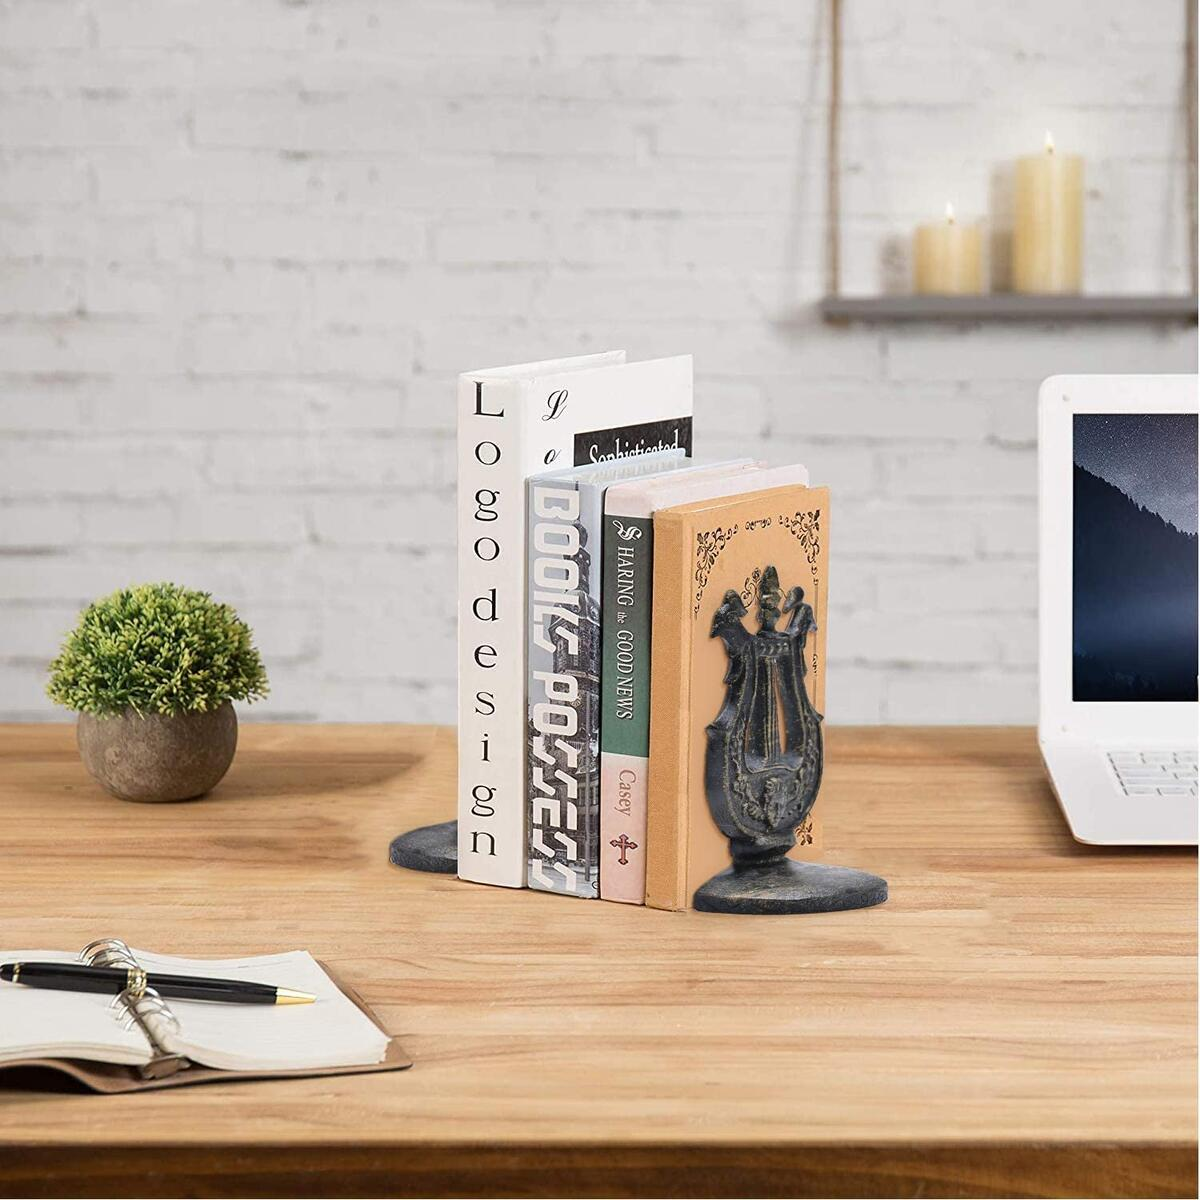 Via Moi Lyra Cast Iron Metal Book ends for Home Heavy Bookends Gifts for Book Lovers Writer Club Book Stopper Holder Knick knacks Home Decor for Shelf